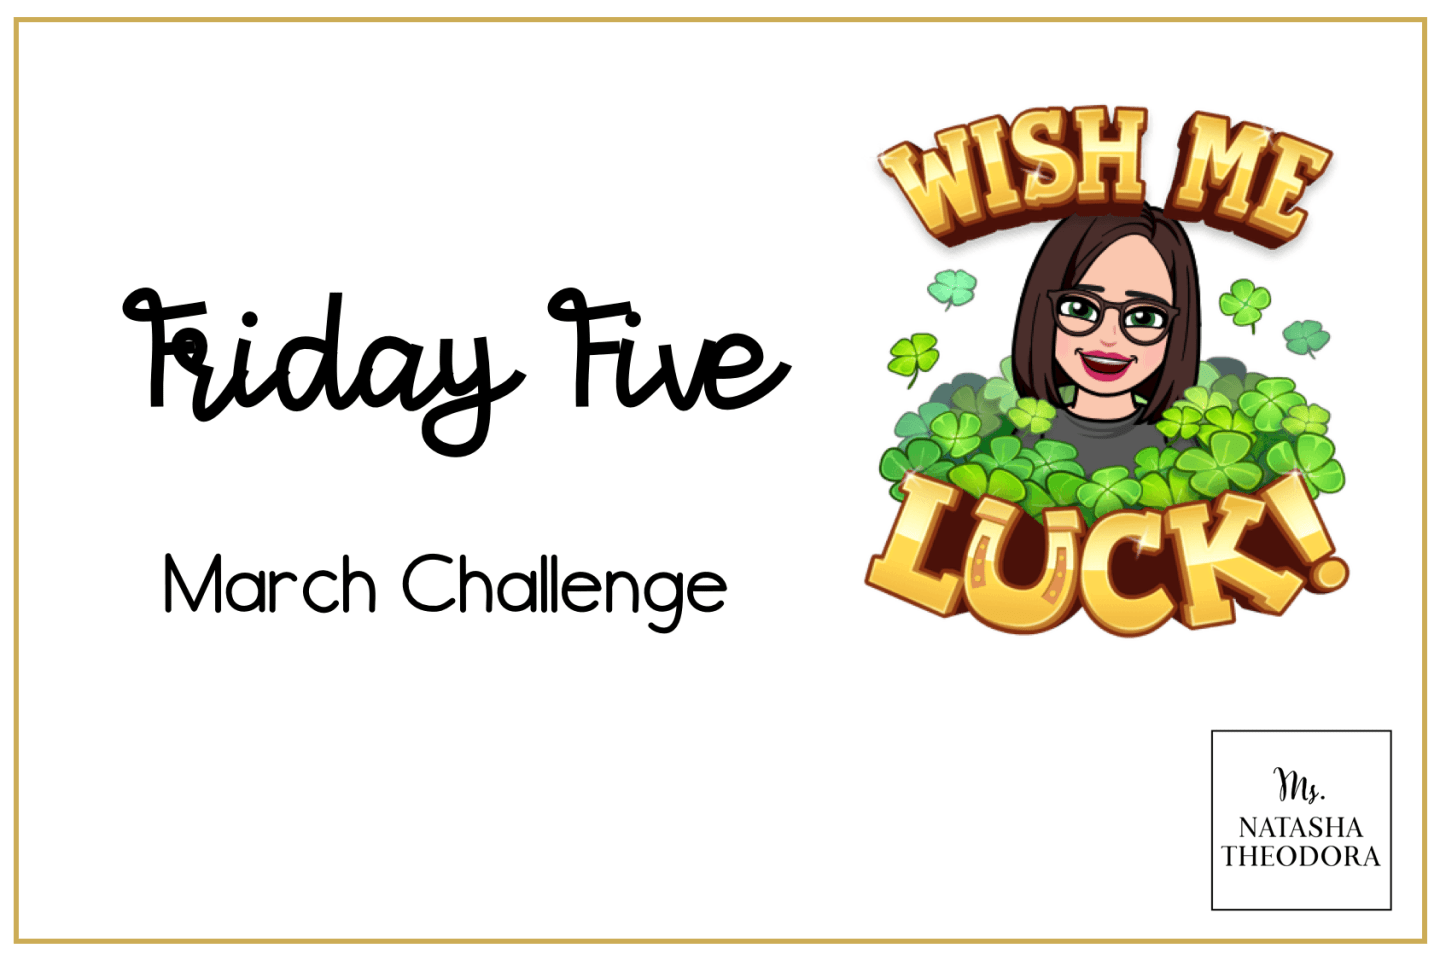 Friday Five: March Challenge